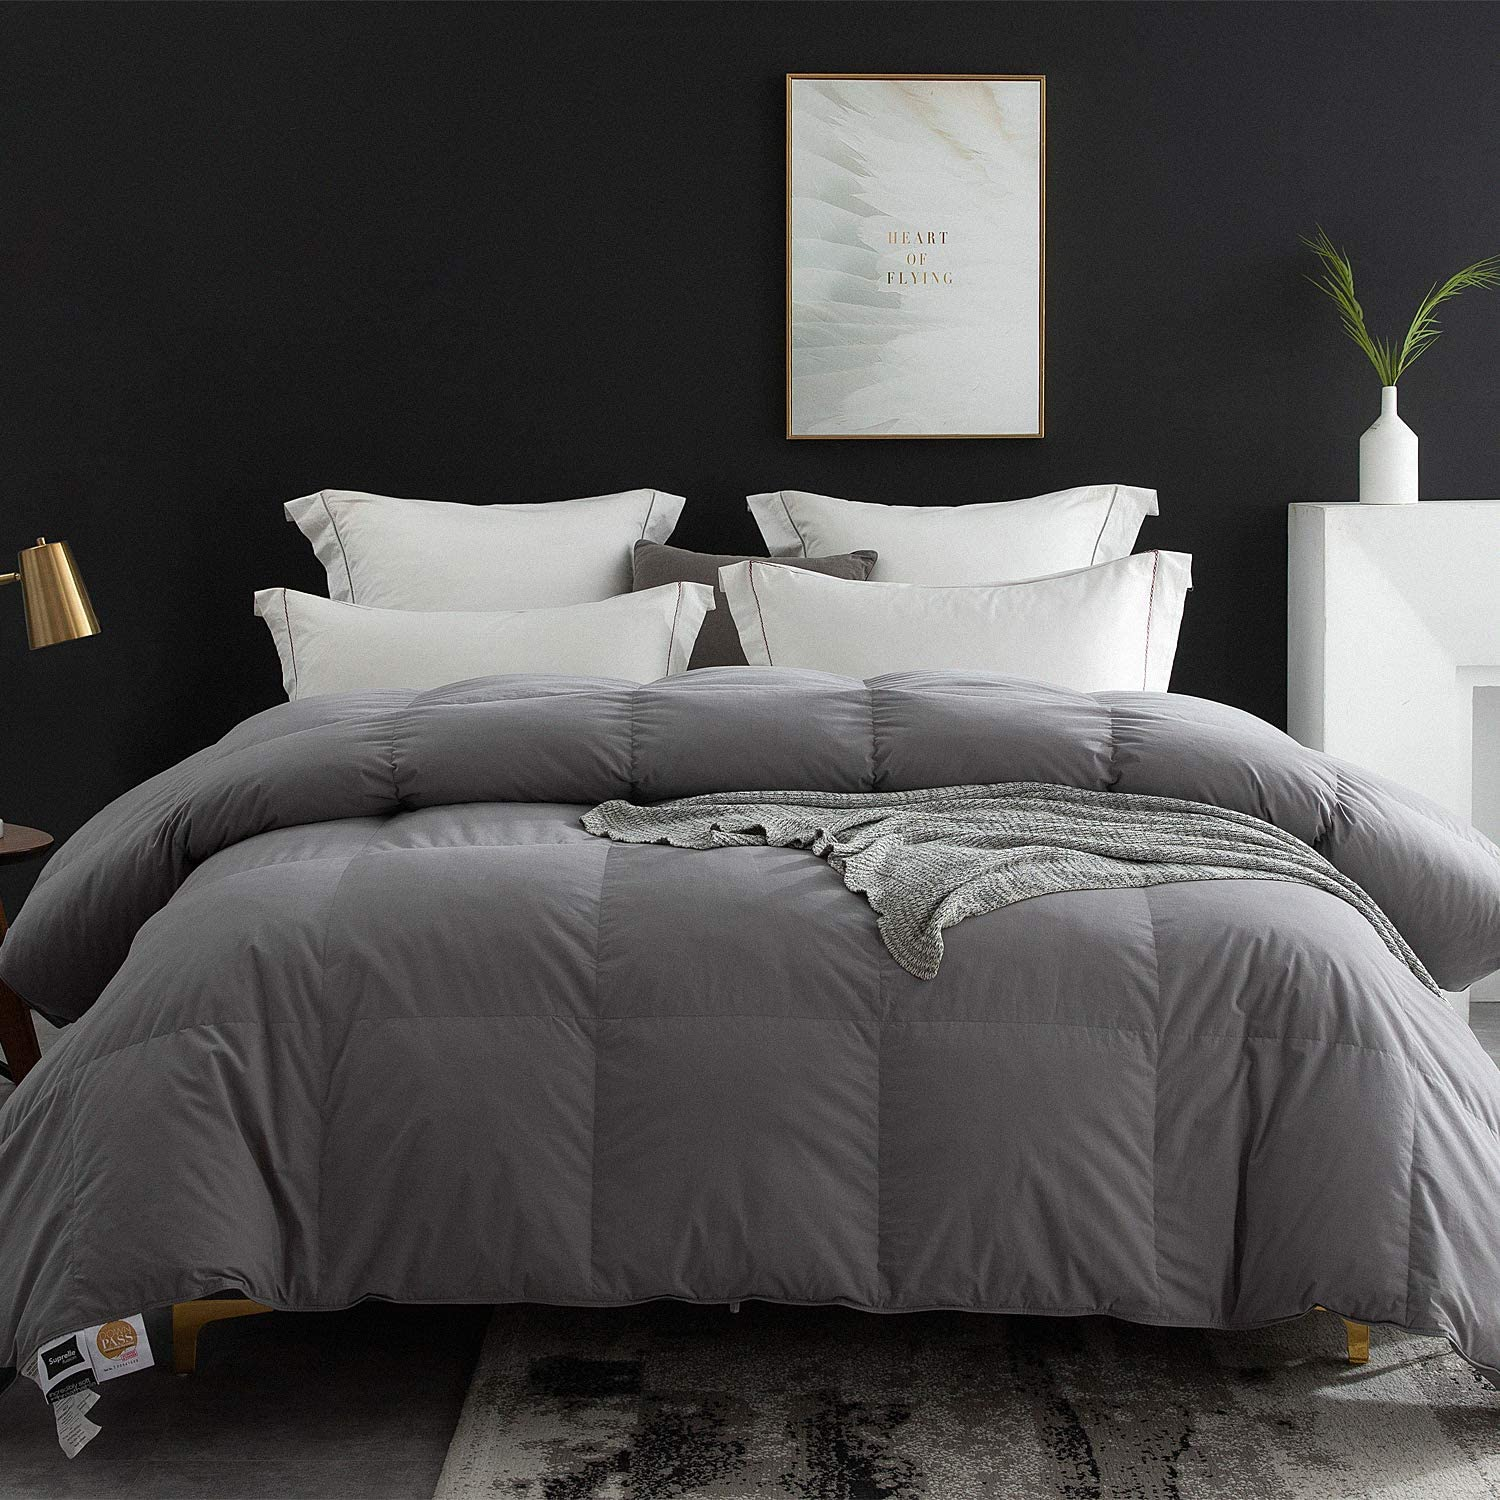 Globon Goose Down Comforter Queen Size All Season Duvet Insert Ultra-Soft 100% Cotton, 38OZ,650 Fill Power, Medium Warmth Hypoallergenic with Corner Tabs, Grey